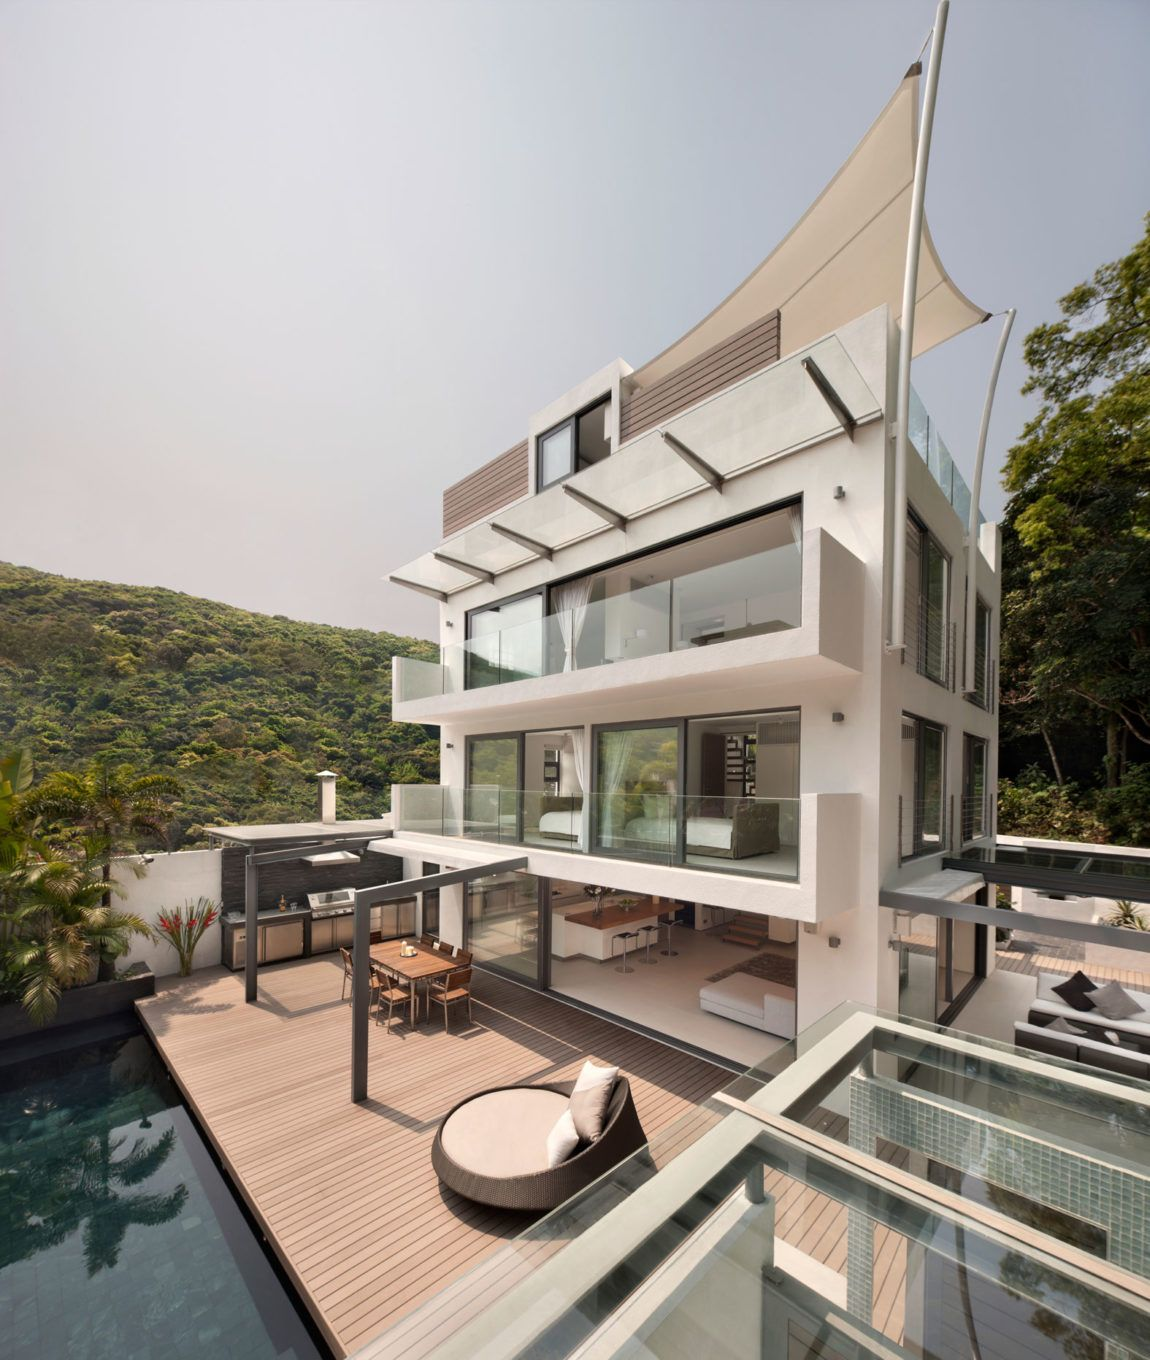 Home Design Ideas Hong Kong: Original Vision Designs A Contemporary Home In Clearwater